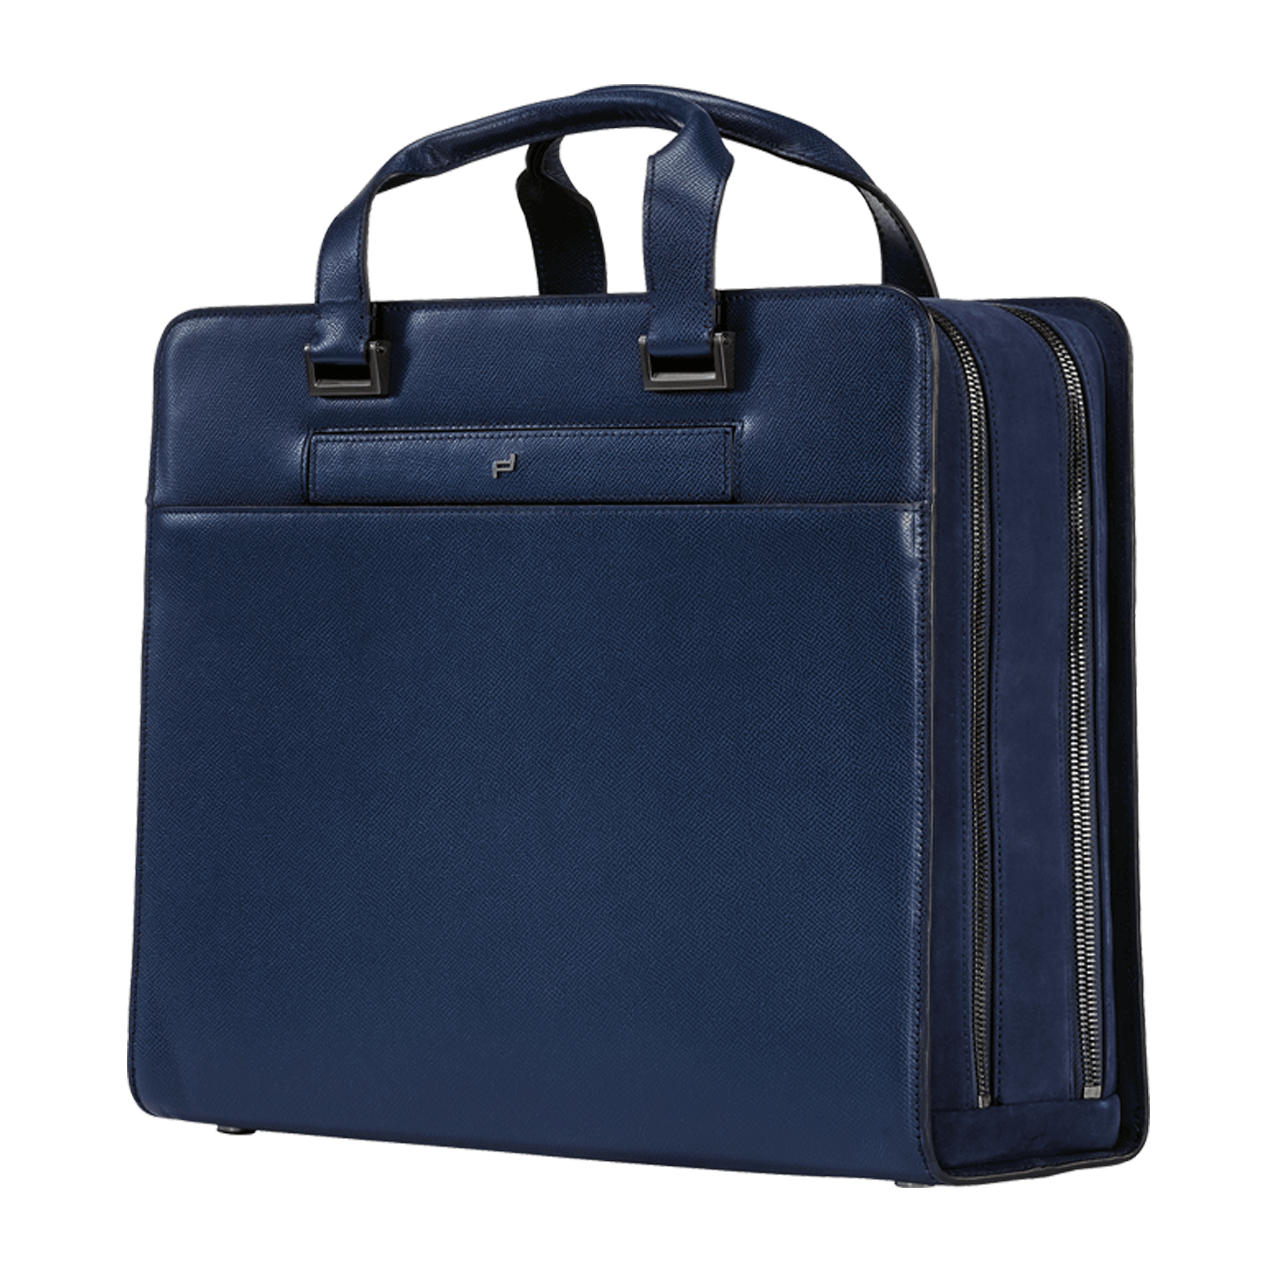 SKYLINE BRIEFBAG MH - фото 2